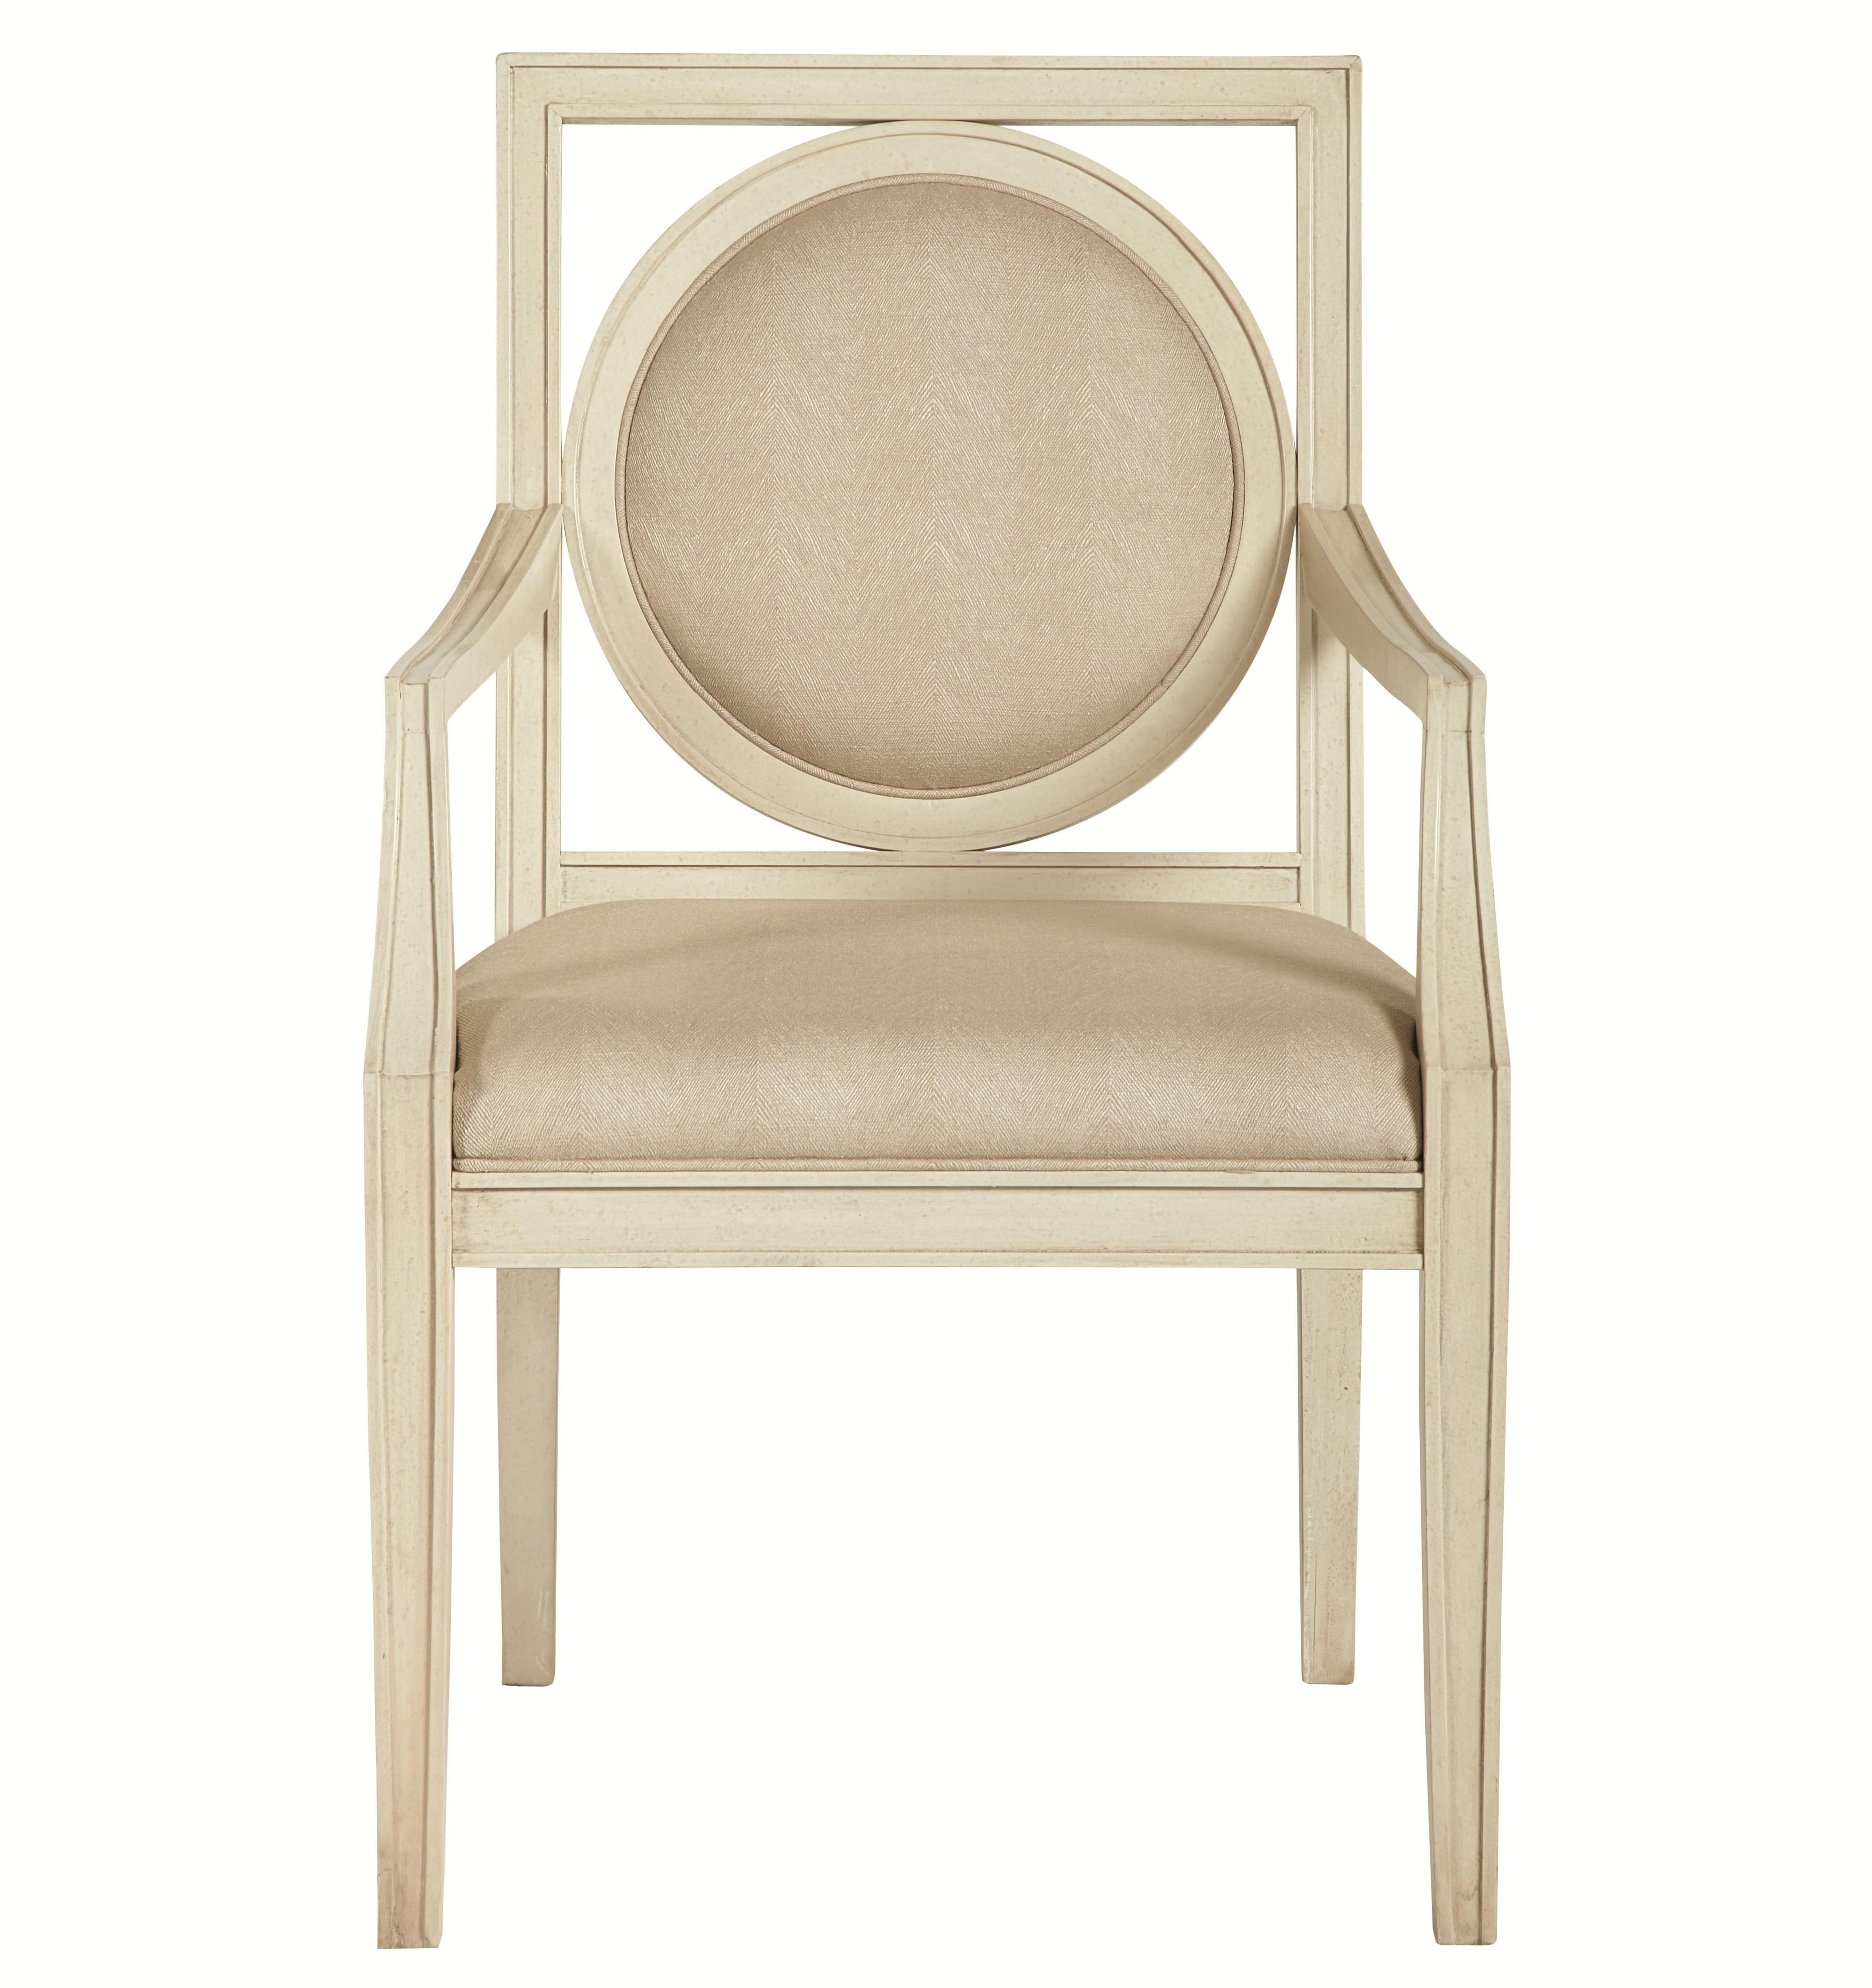 Bernhardt Salon Arm Chair - Item Number: 341-562